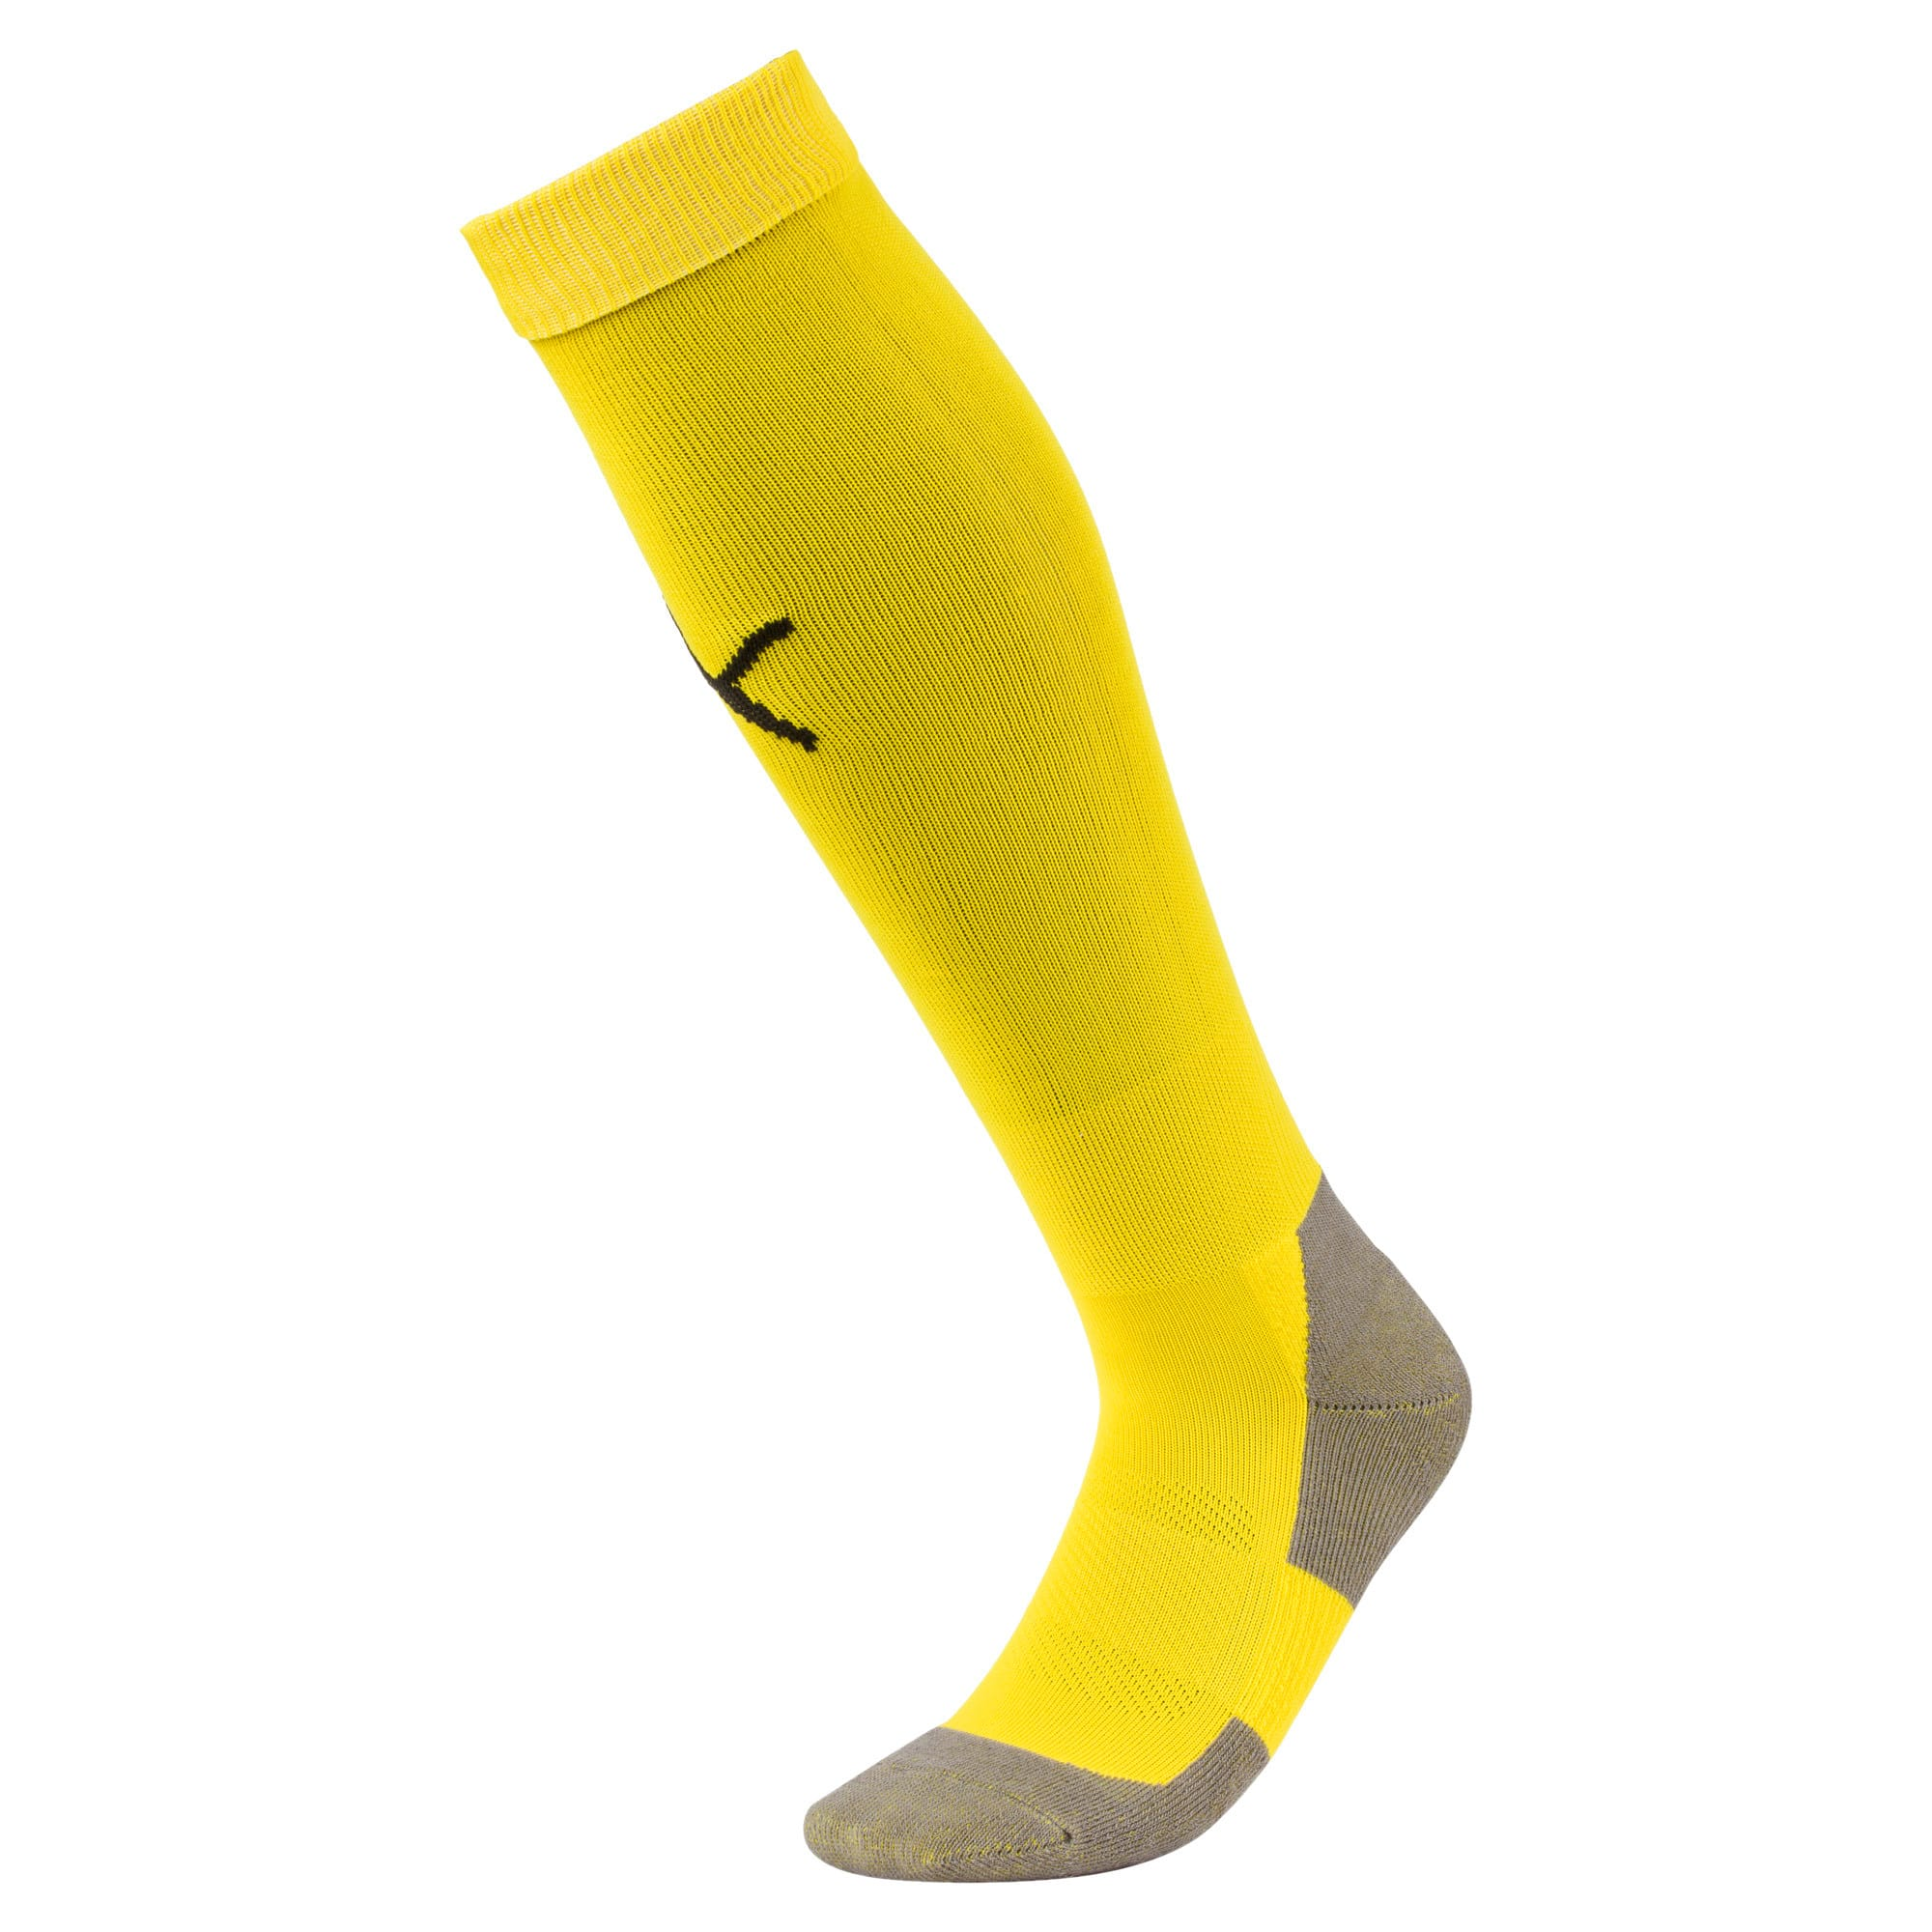 Thumbnail 1 of Football Men's LIGA Core Socks, Cyber Yellow-Puma Black, medium